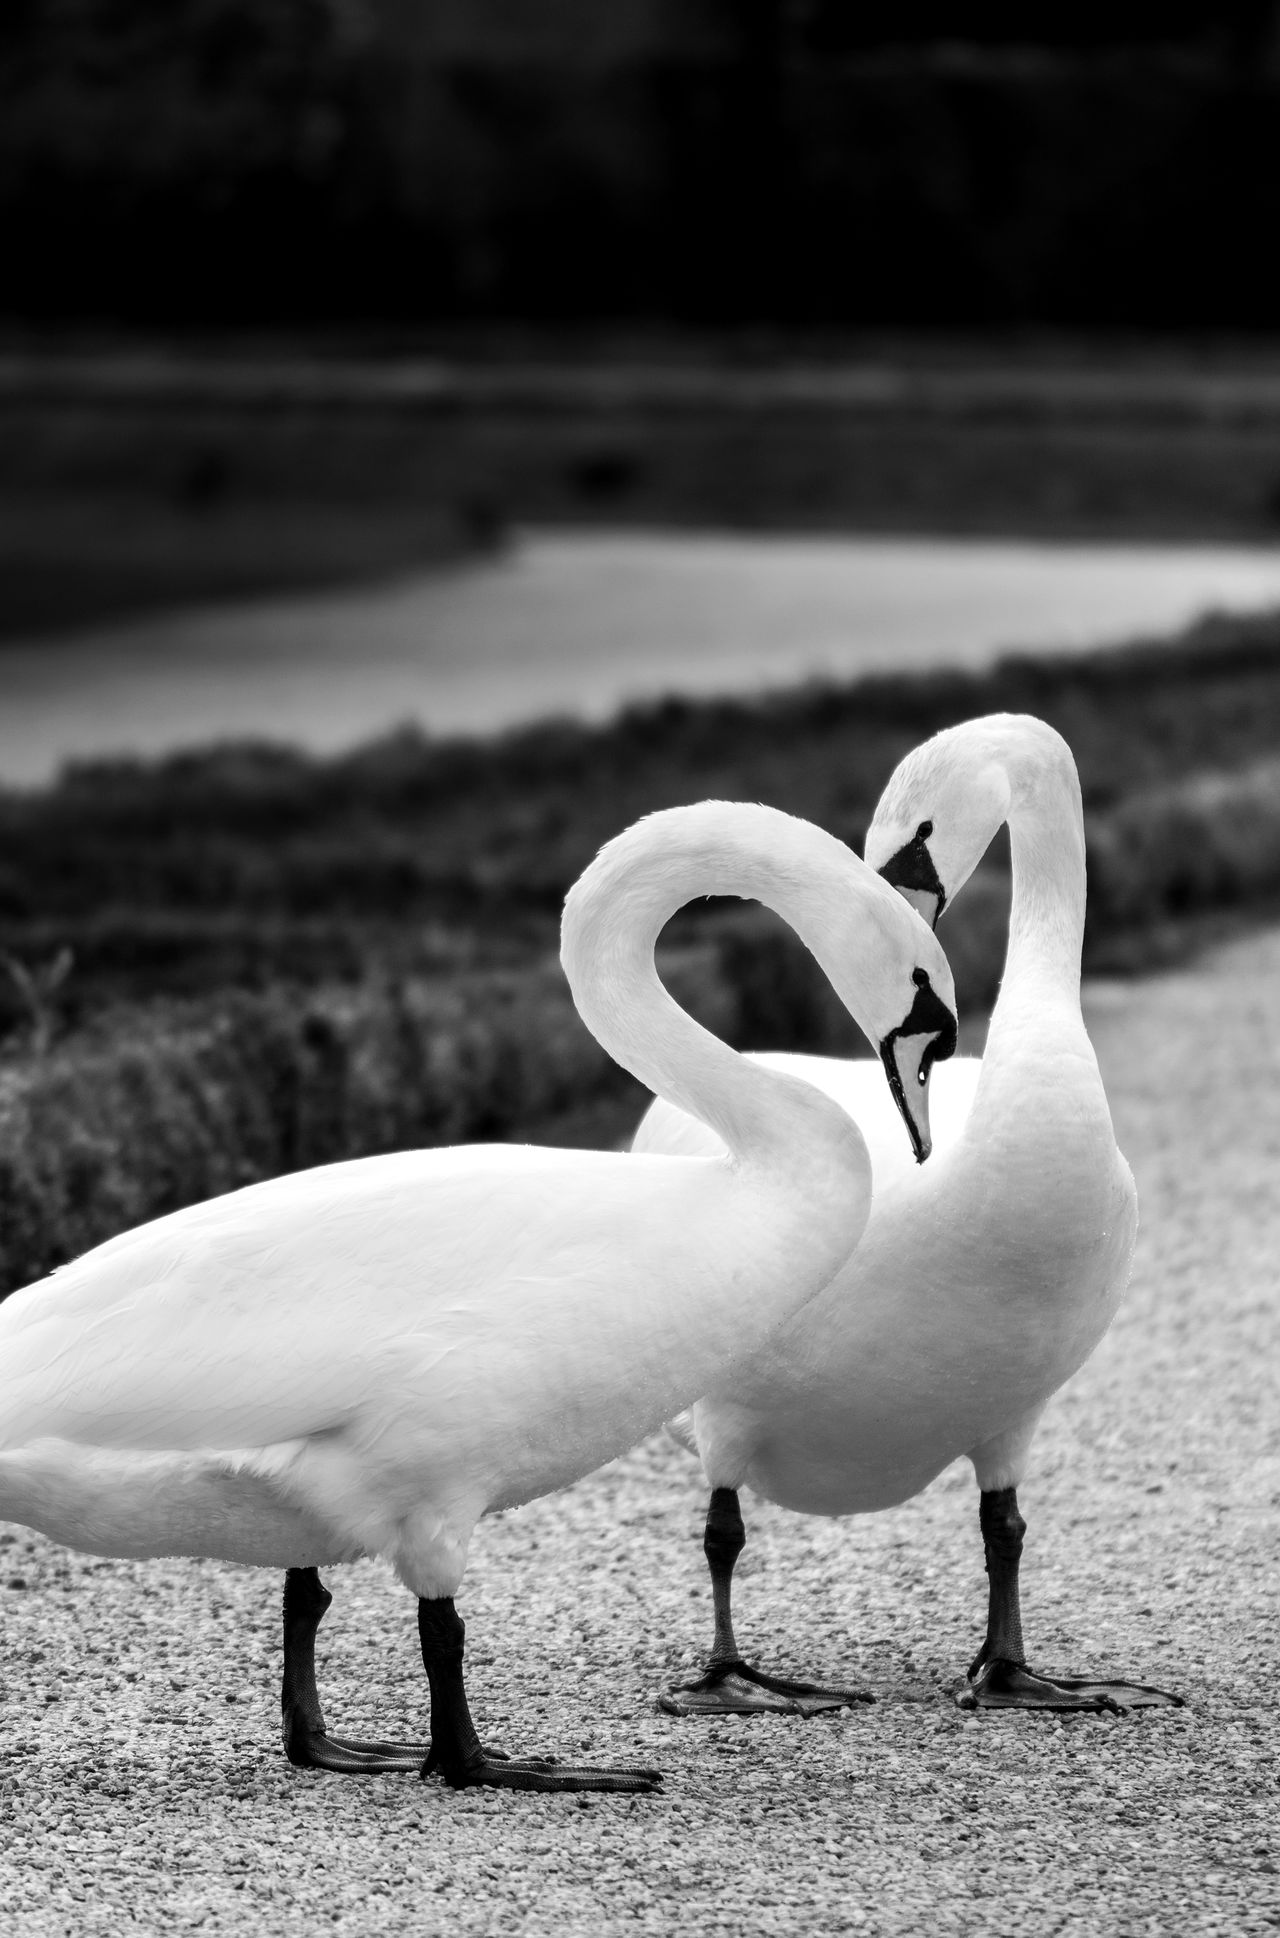 Animal Themes Animal Wildlife Animals In The Wild Beauty In Nature TCPM Bird Black & White Black And White Black And White Photography Falling In Love Blackandwhite Photography Charm Close-up Day Graceful Gracefulness Lake Loveliness Nature No People Outdoors Swan Swimming Water Water Bird